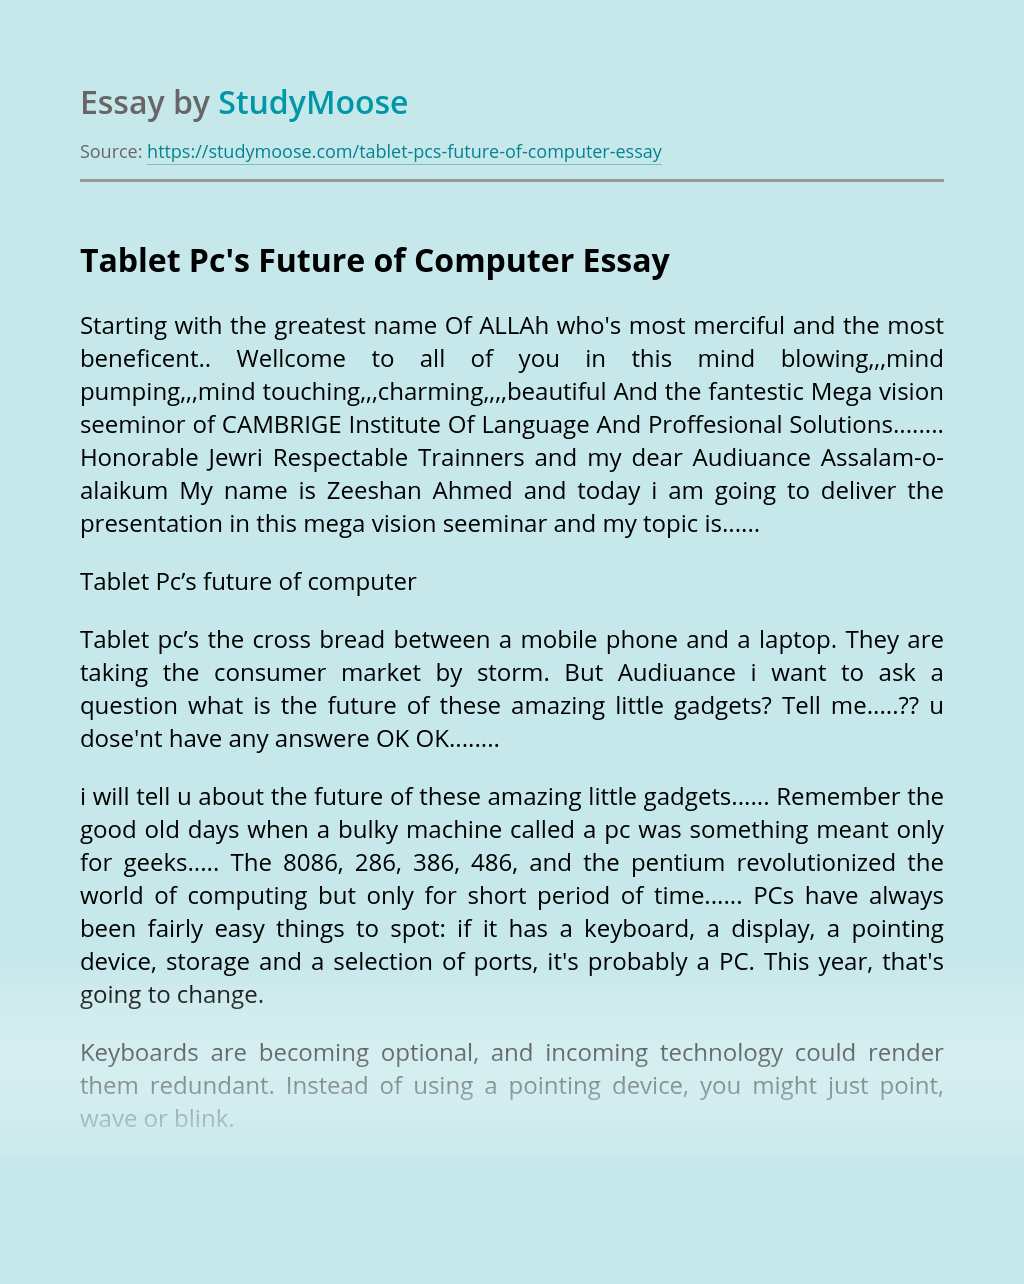 Tablet Pc's Future of Computer